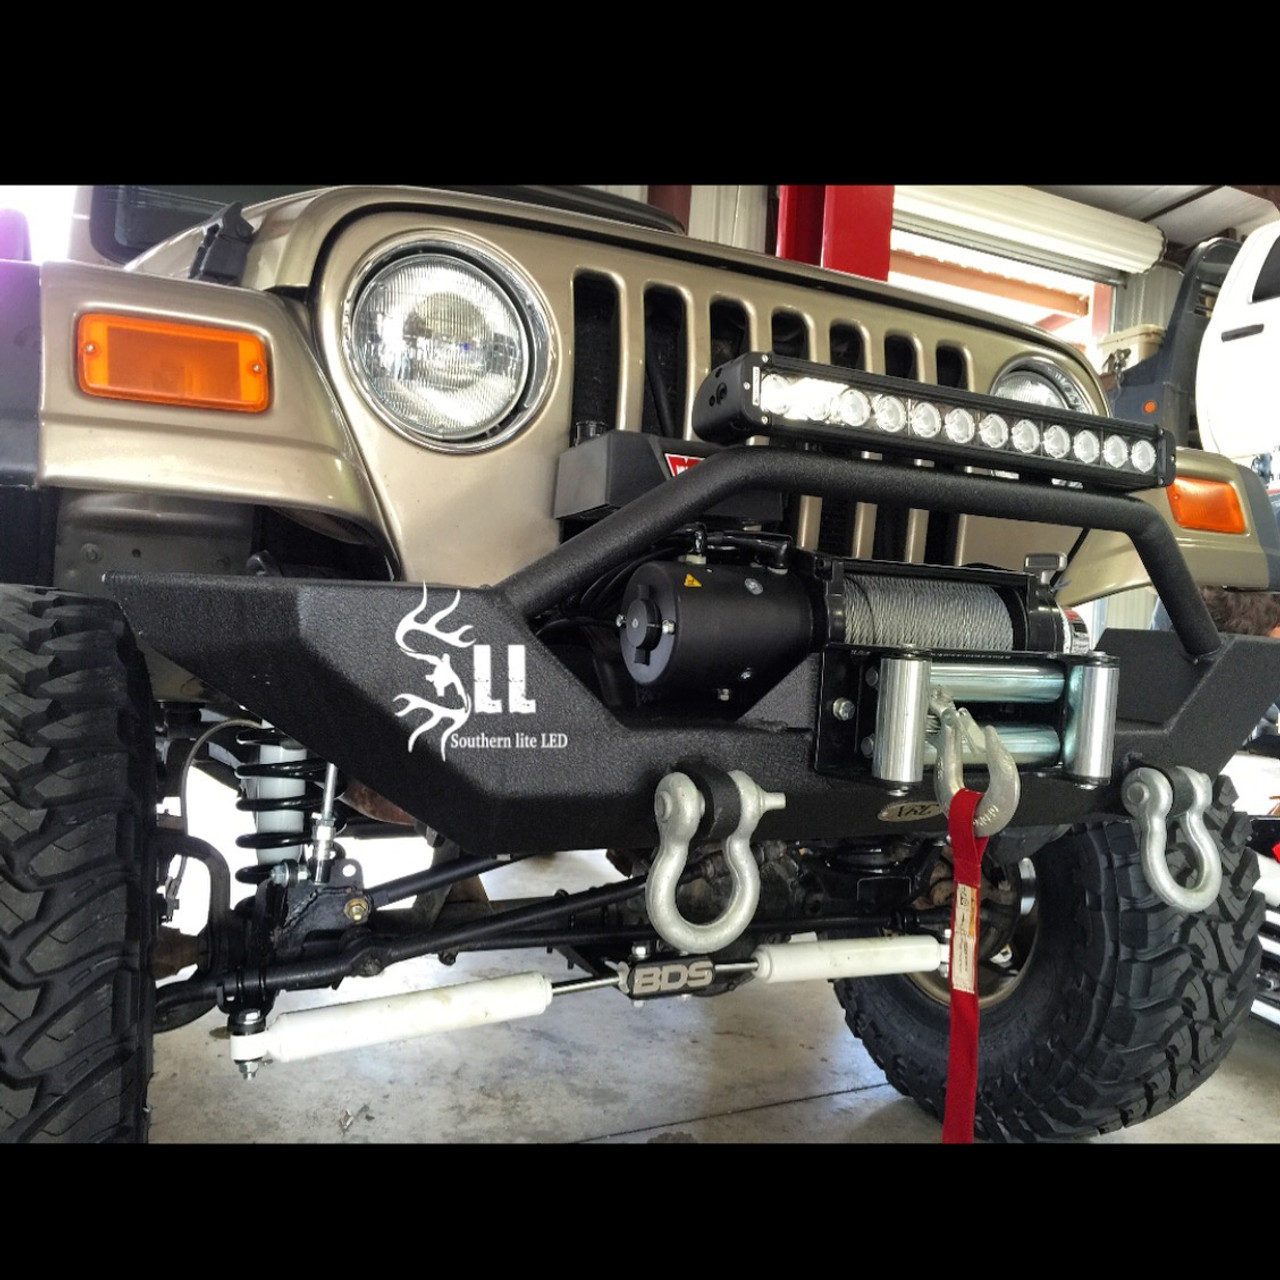 """21"""" Southern lite LED 120 Watt Light Bar (Includes light and wiring harness)"""